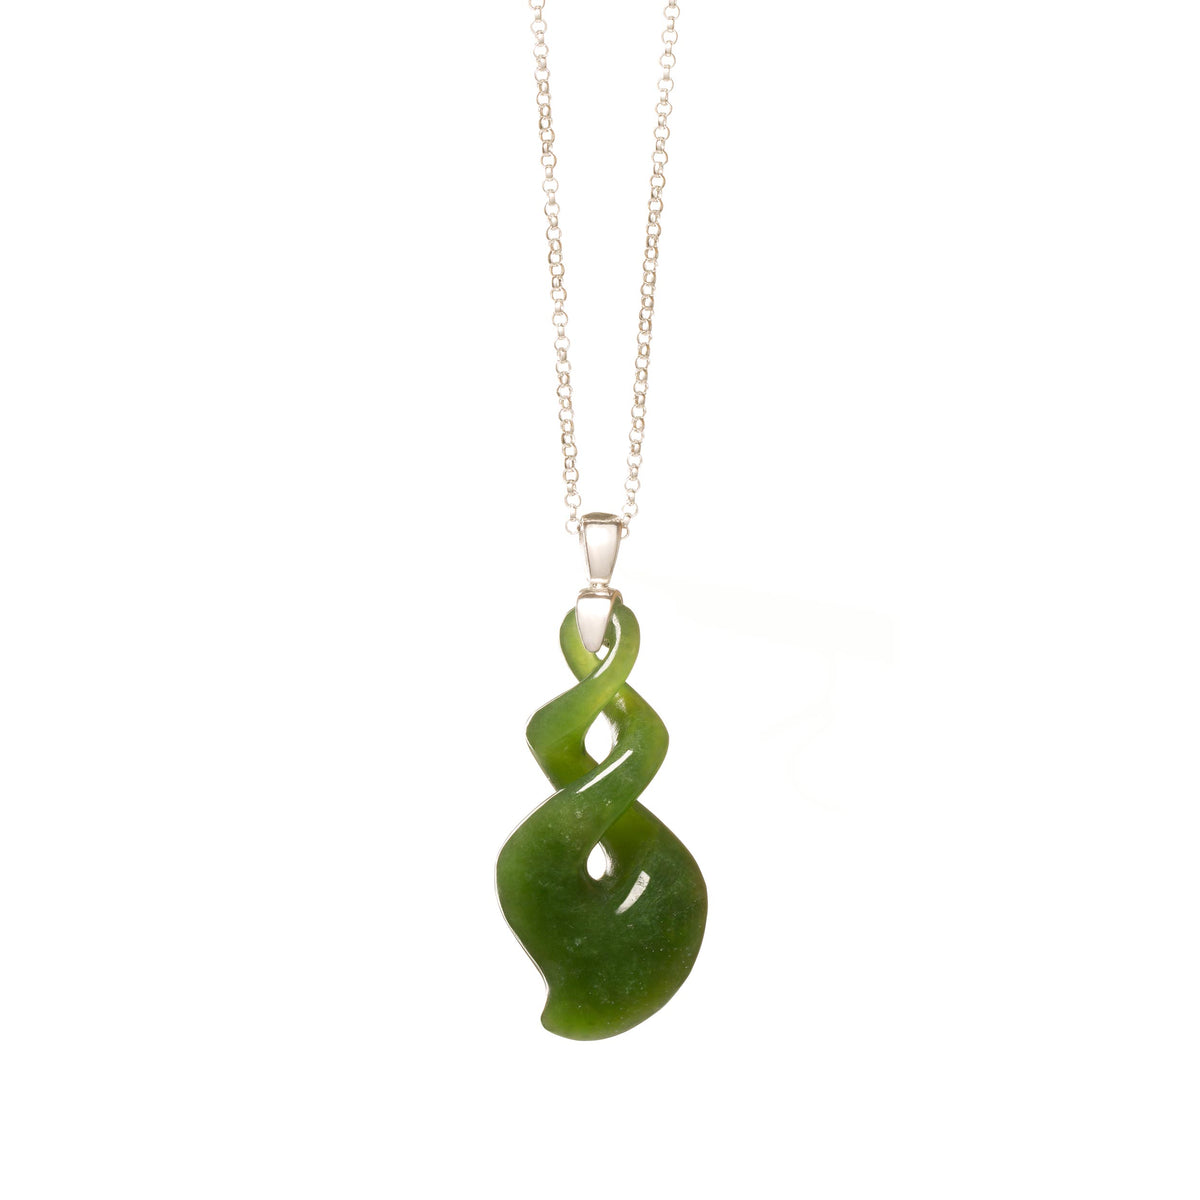 New Zealand Pounamu Silver Twist Necklace